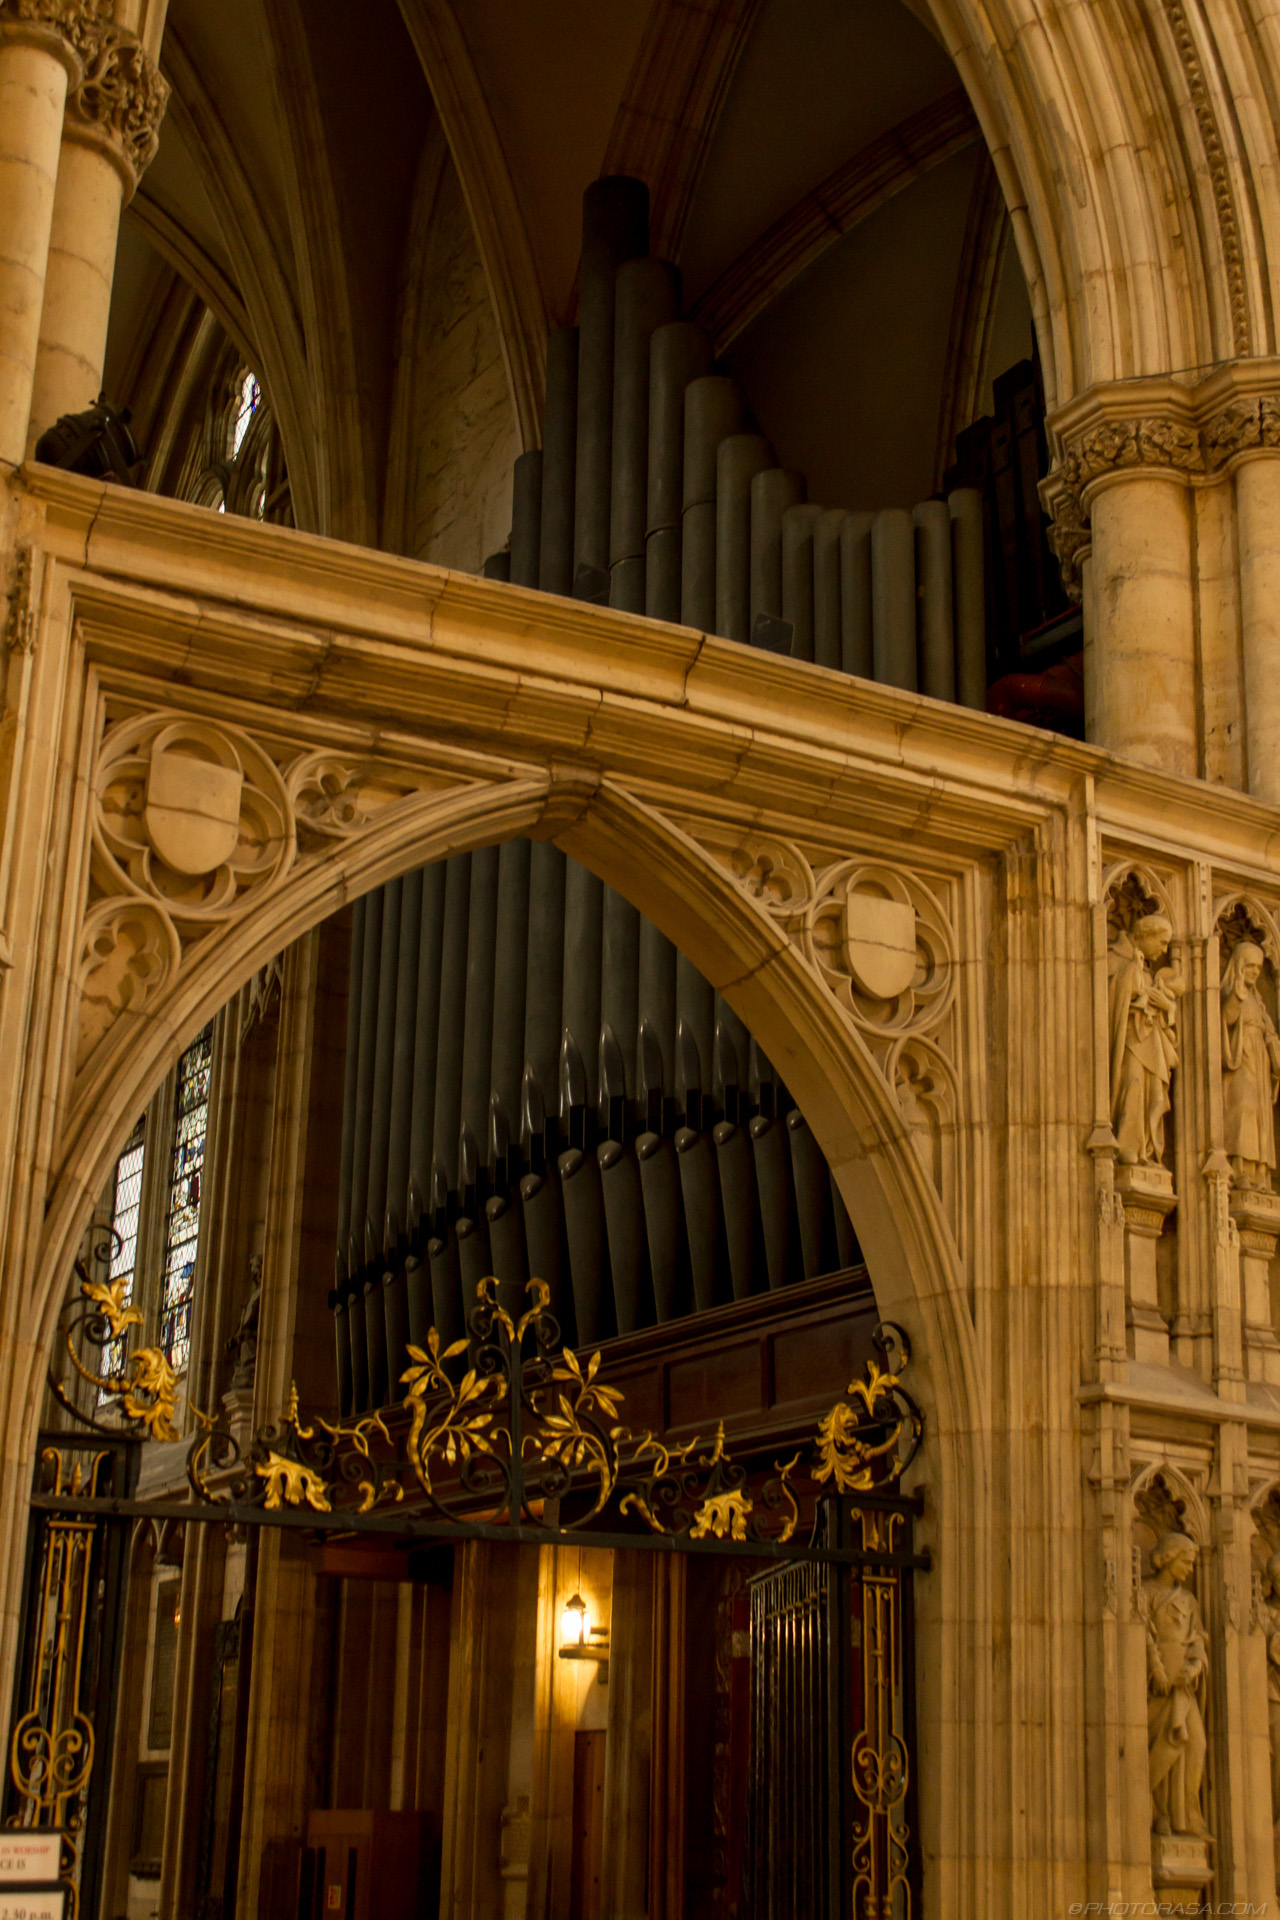 https://photorasa.com/yorkminster-cathedral/stone-archway-in-front-of-organ-pipes/